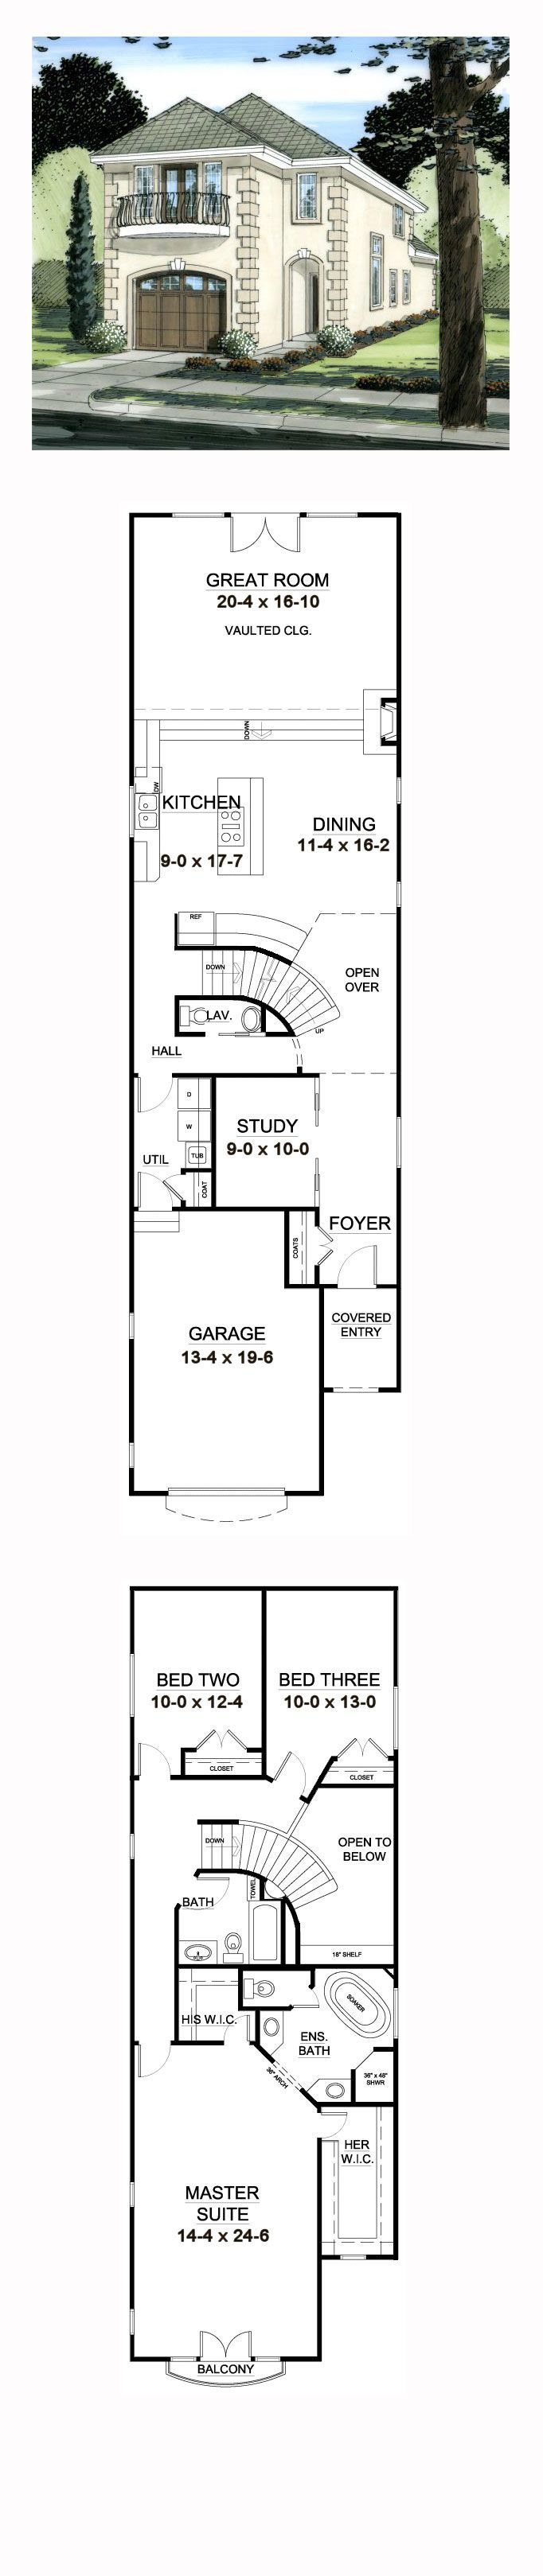 Florida house plan 99997 narrow lot house plans and bedrooms for Lot plan